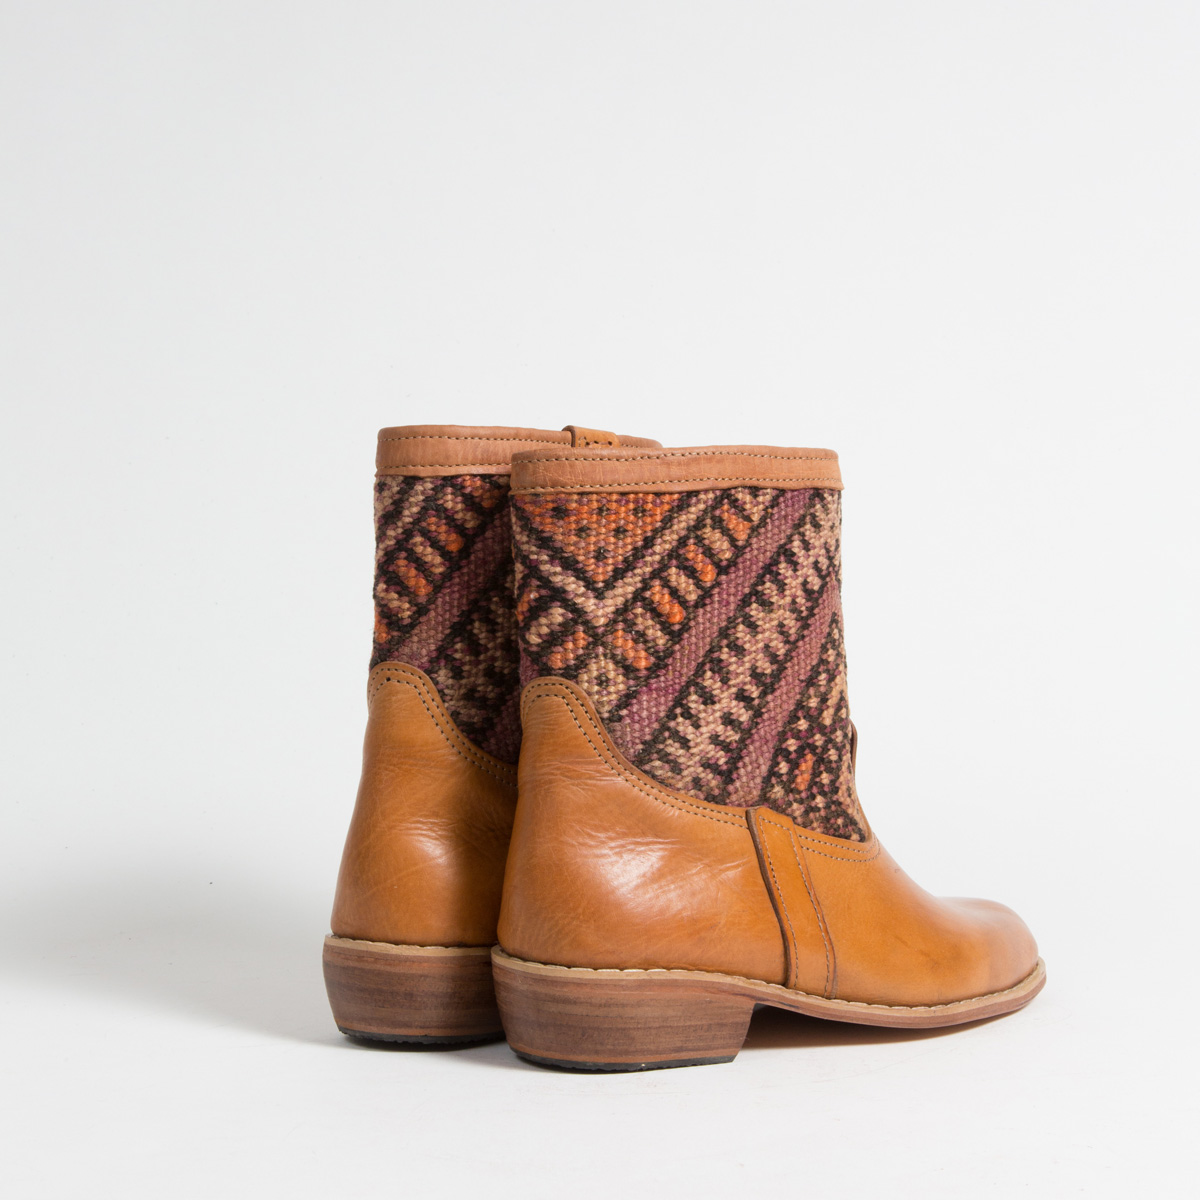 Bottines Kilim cuir mababouche artisanales (Réf. GC2-38)